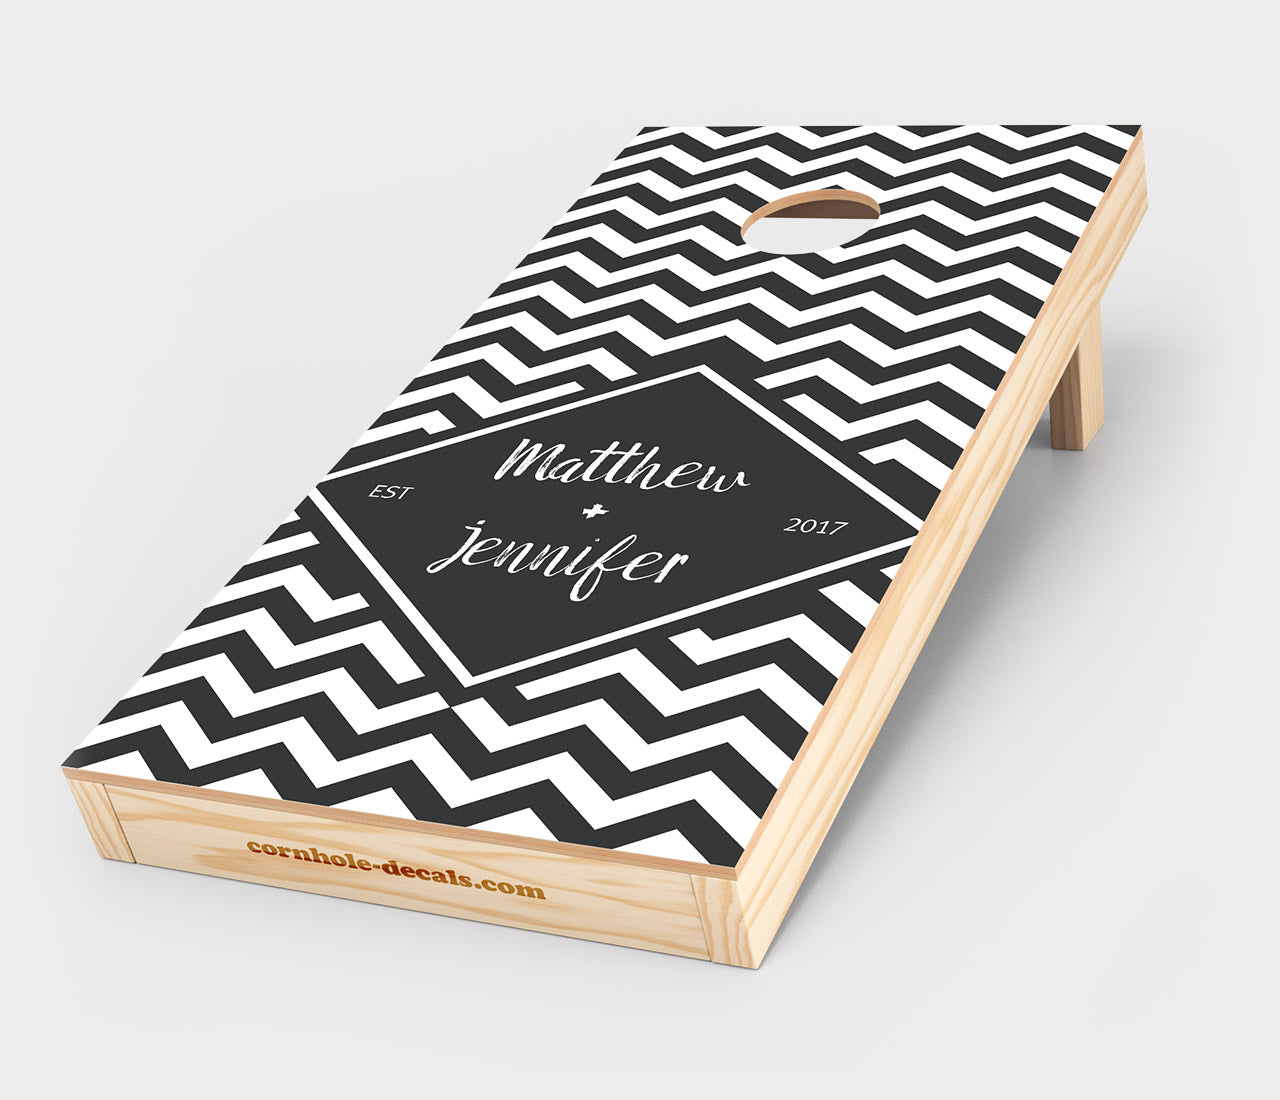 Chuggles Cornhole - Black and White Wedding Cornhole Decal